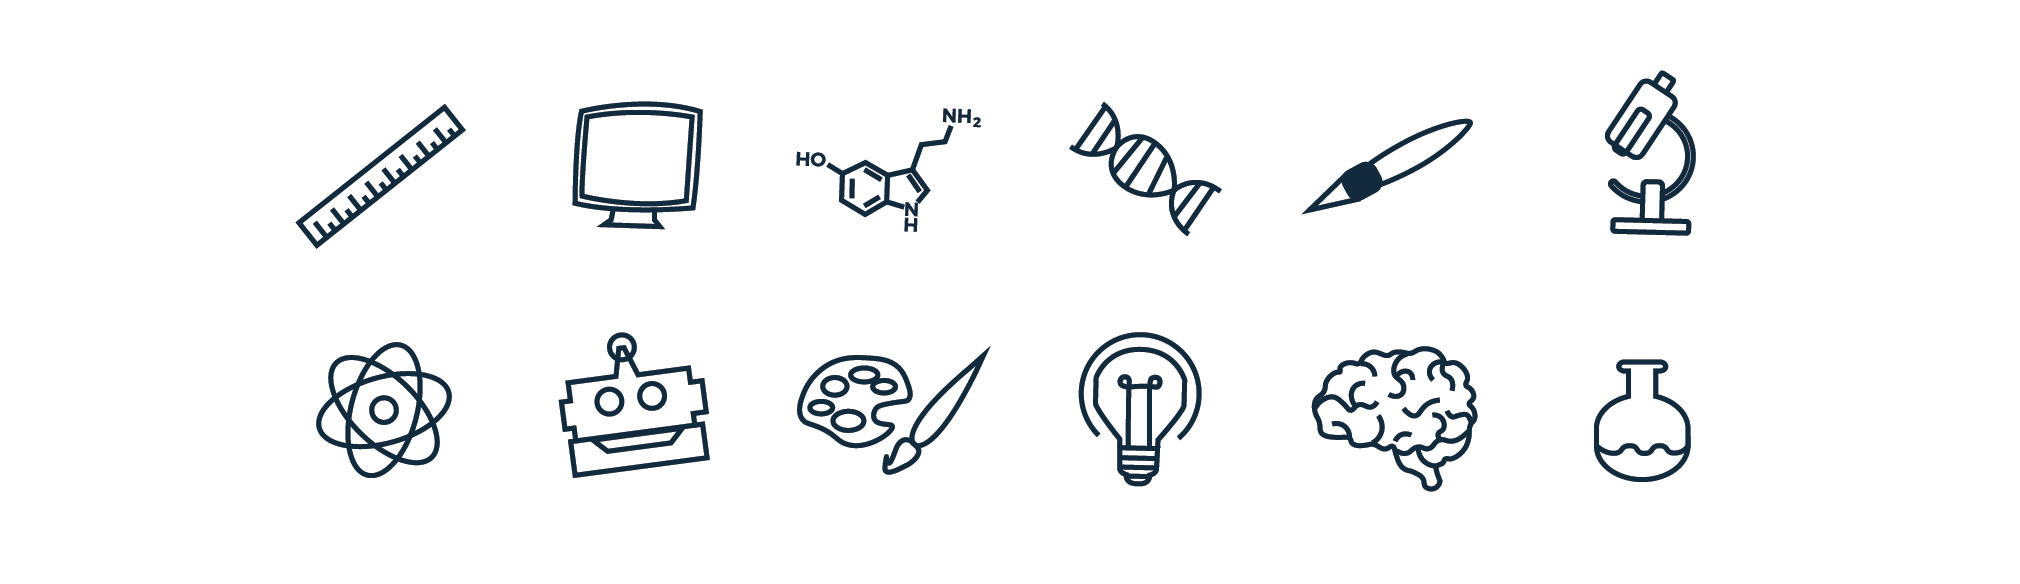 Science Illustrated Web Icons & Symbols